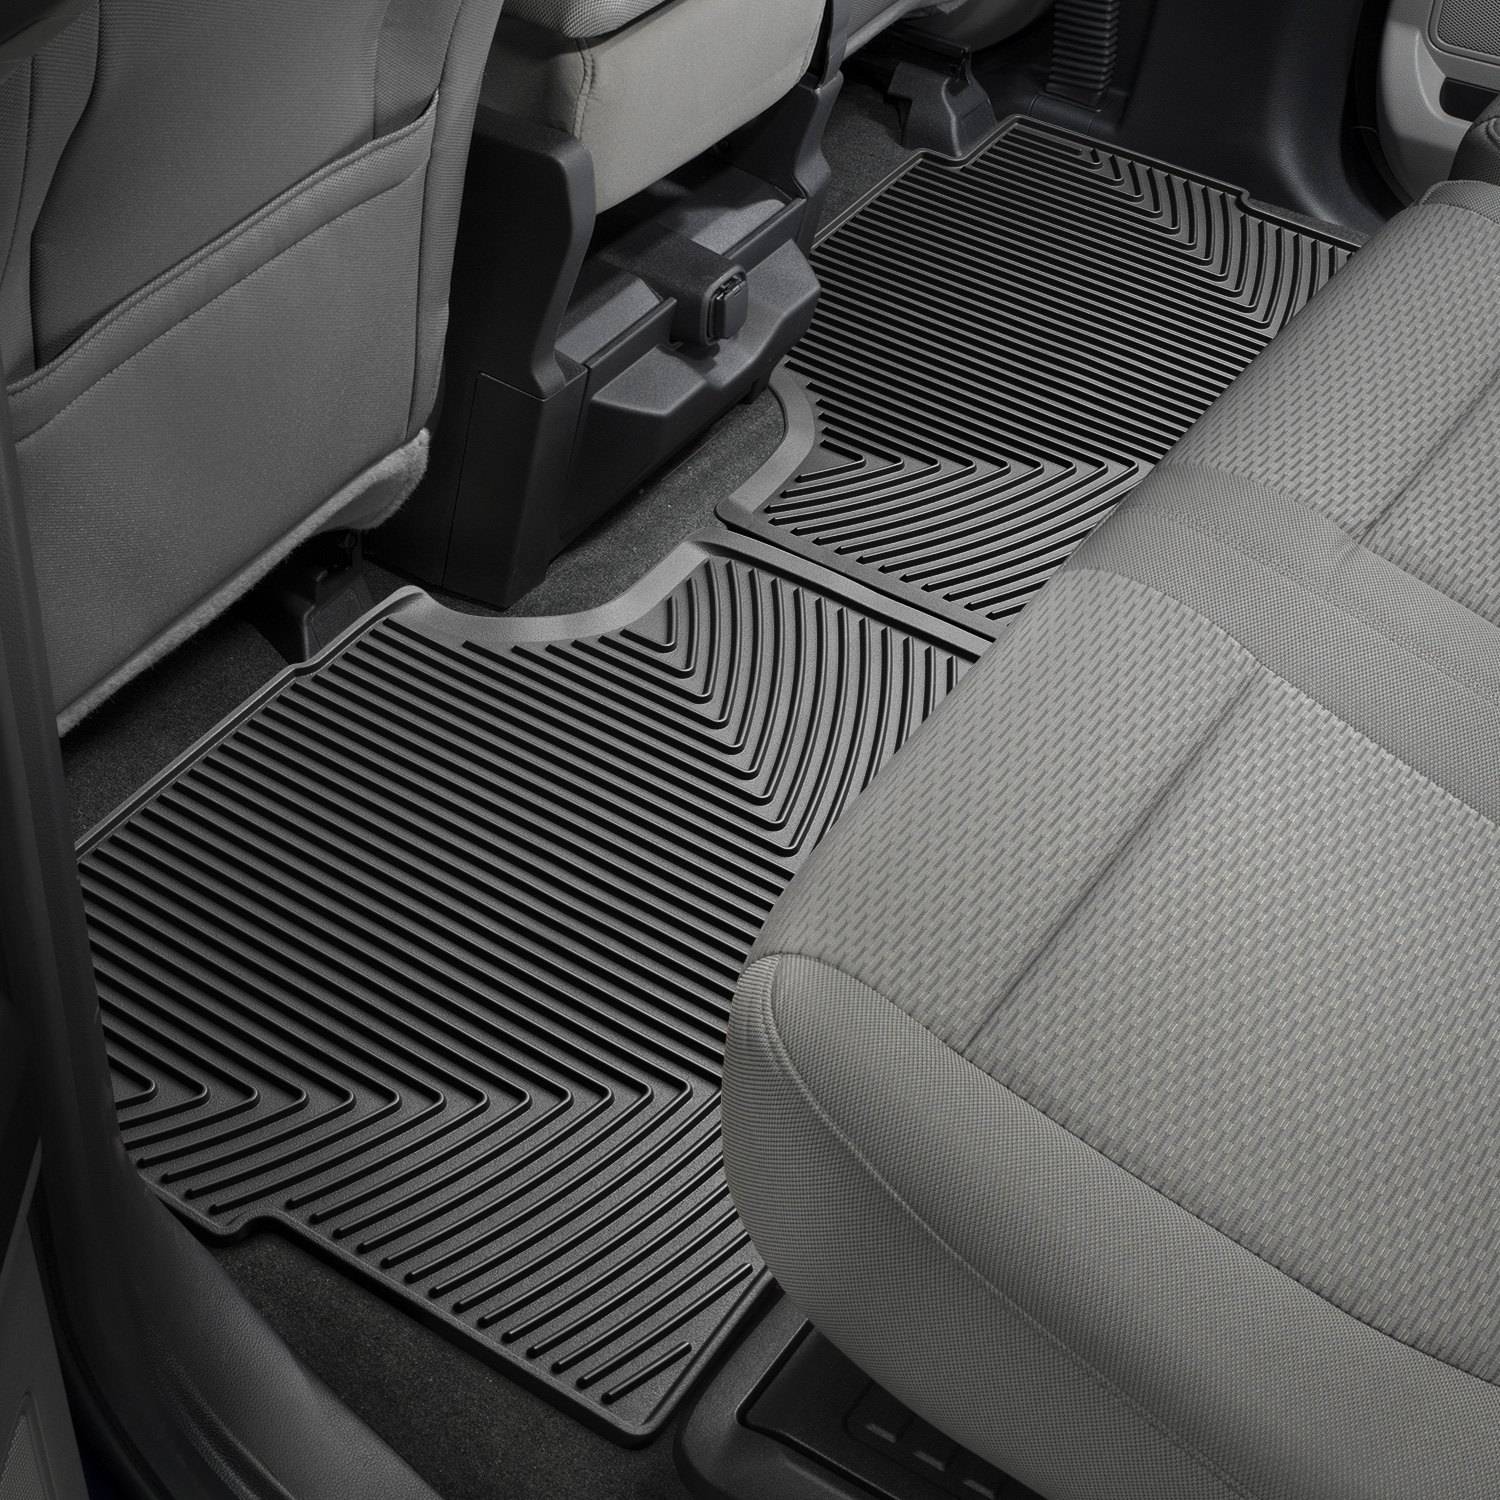 weathertech review f gallery floor supercrew watch photo video liners ford mats